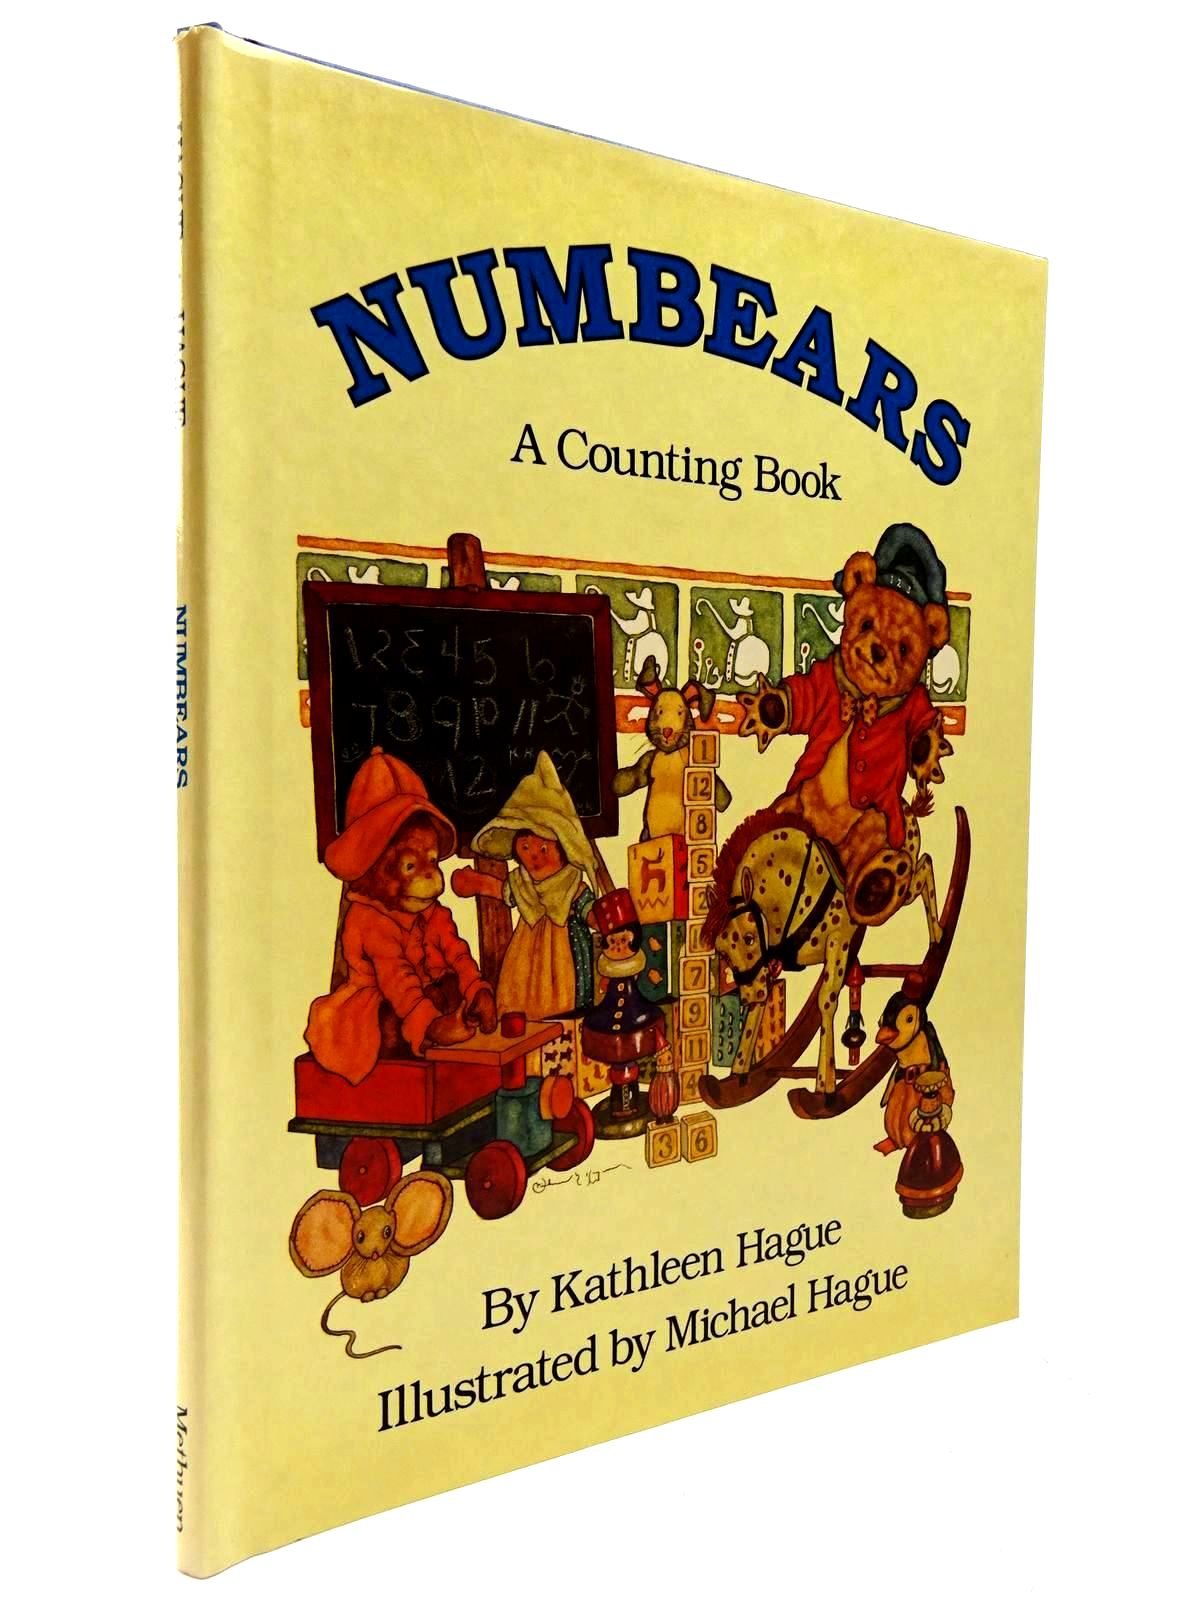 Photo of NUMBEARS - A COUNTING BOOK written by Hague, Kathleen illustrated by Hague, Michael published by Methuen Children's Books (STOCK CODE: 2130600)  for sale by Stella & Rose's Books